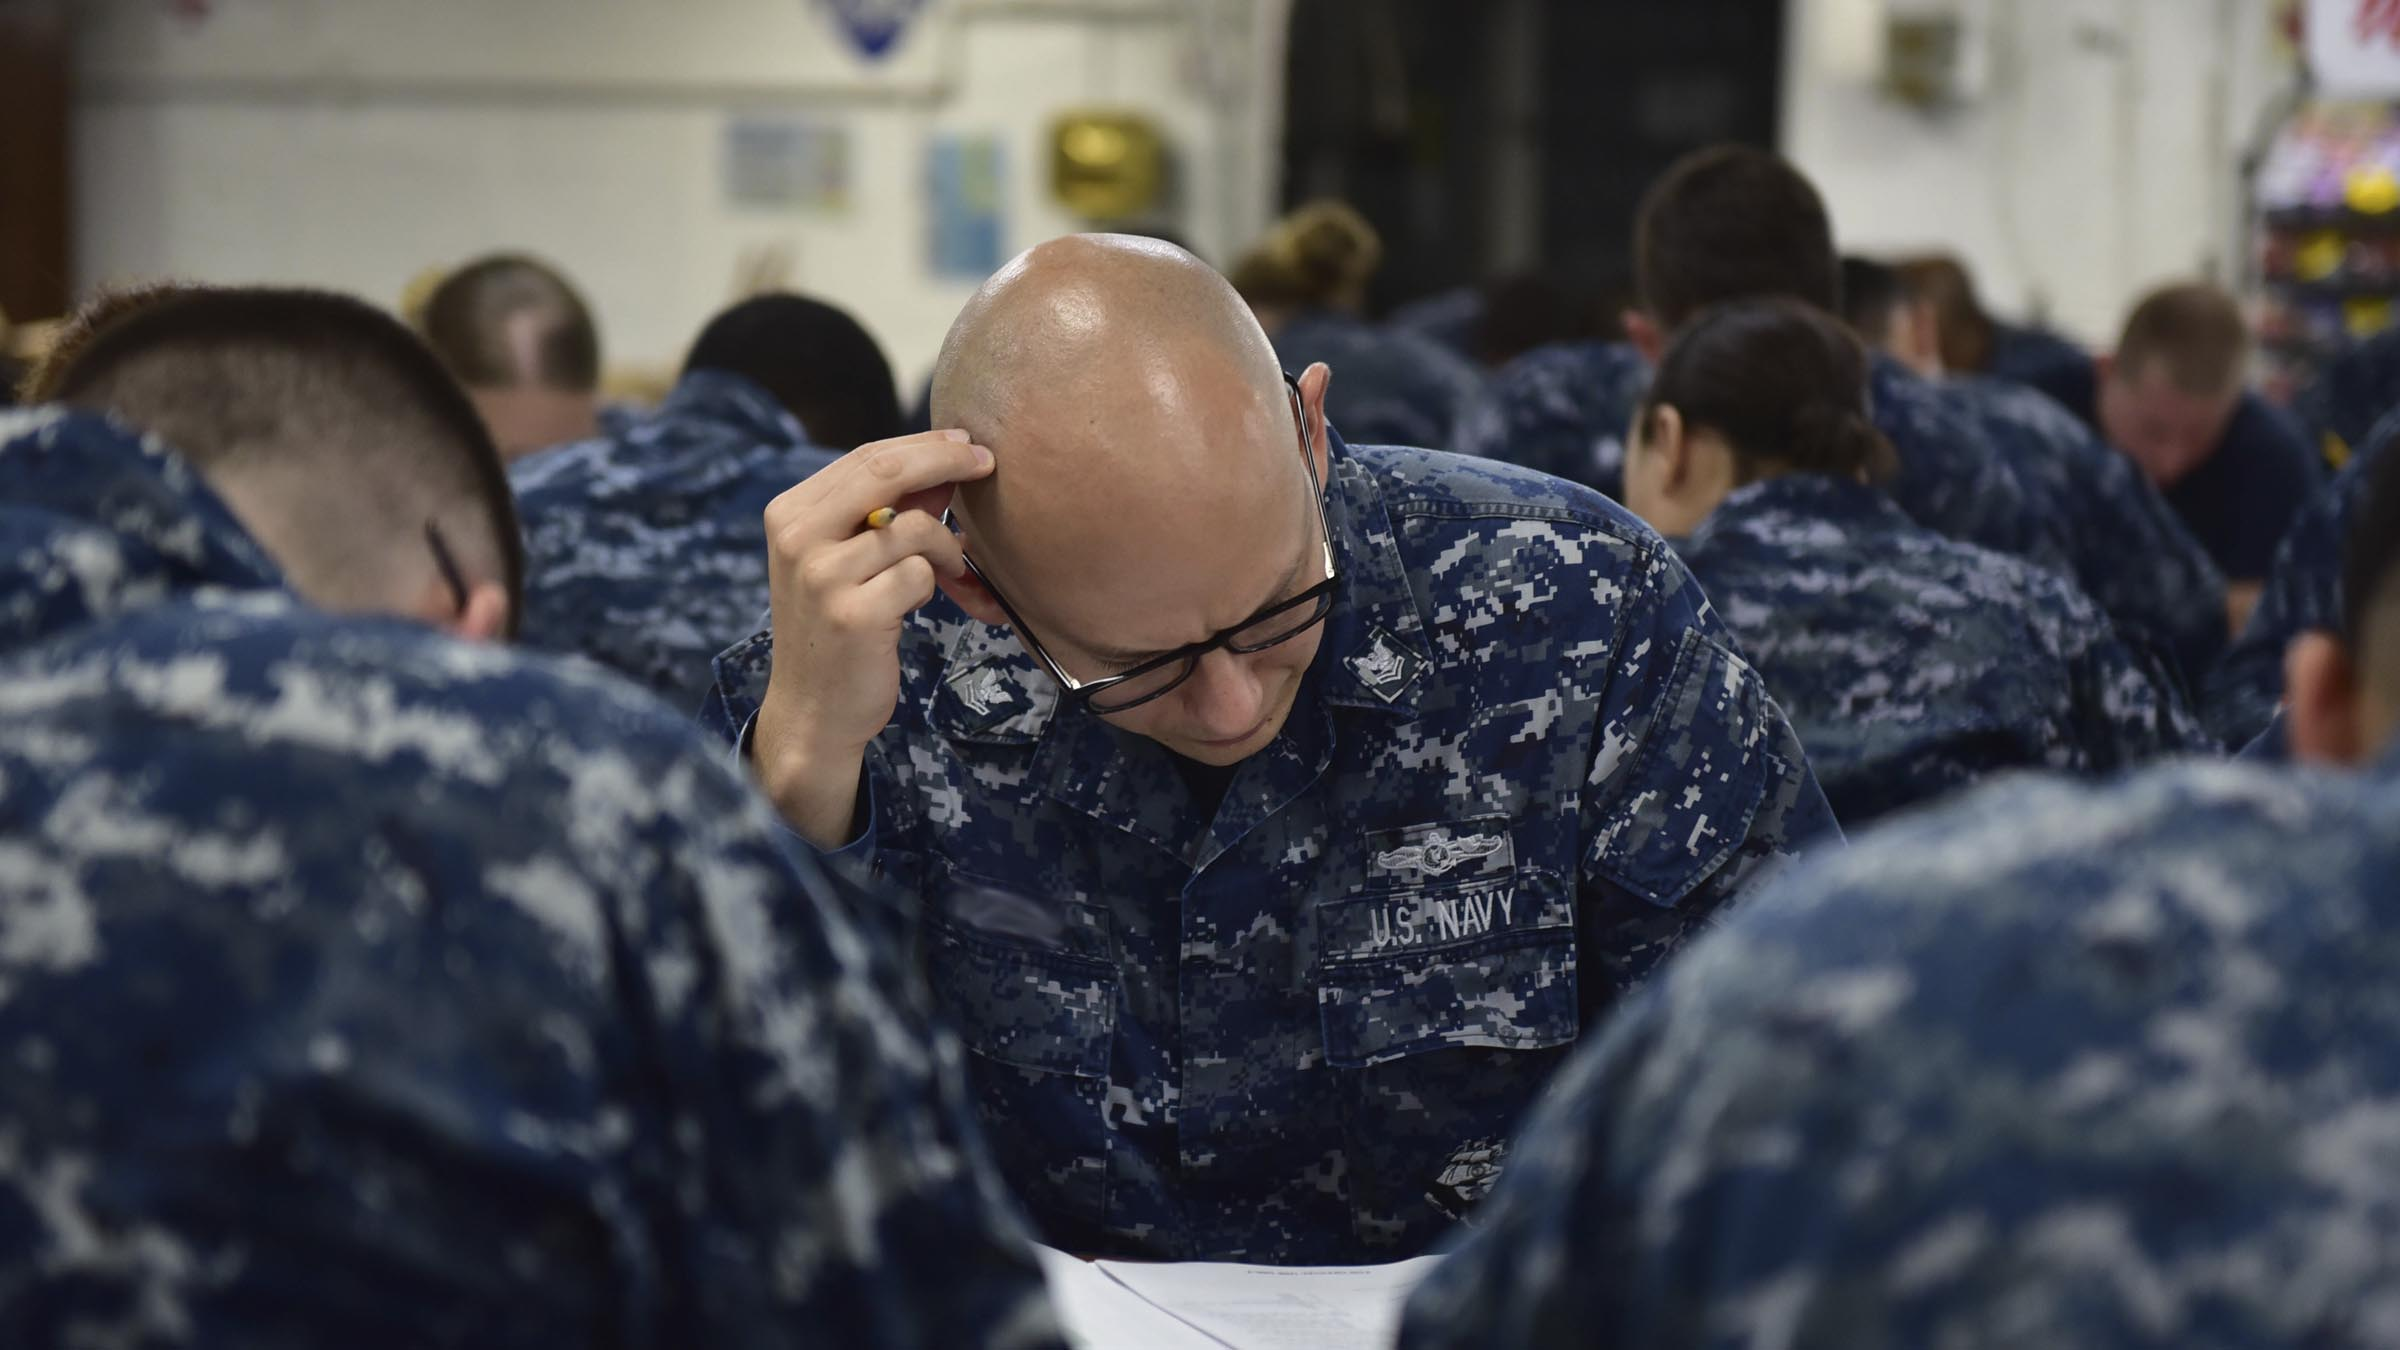 Service member taking advancement exam